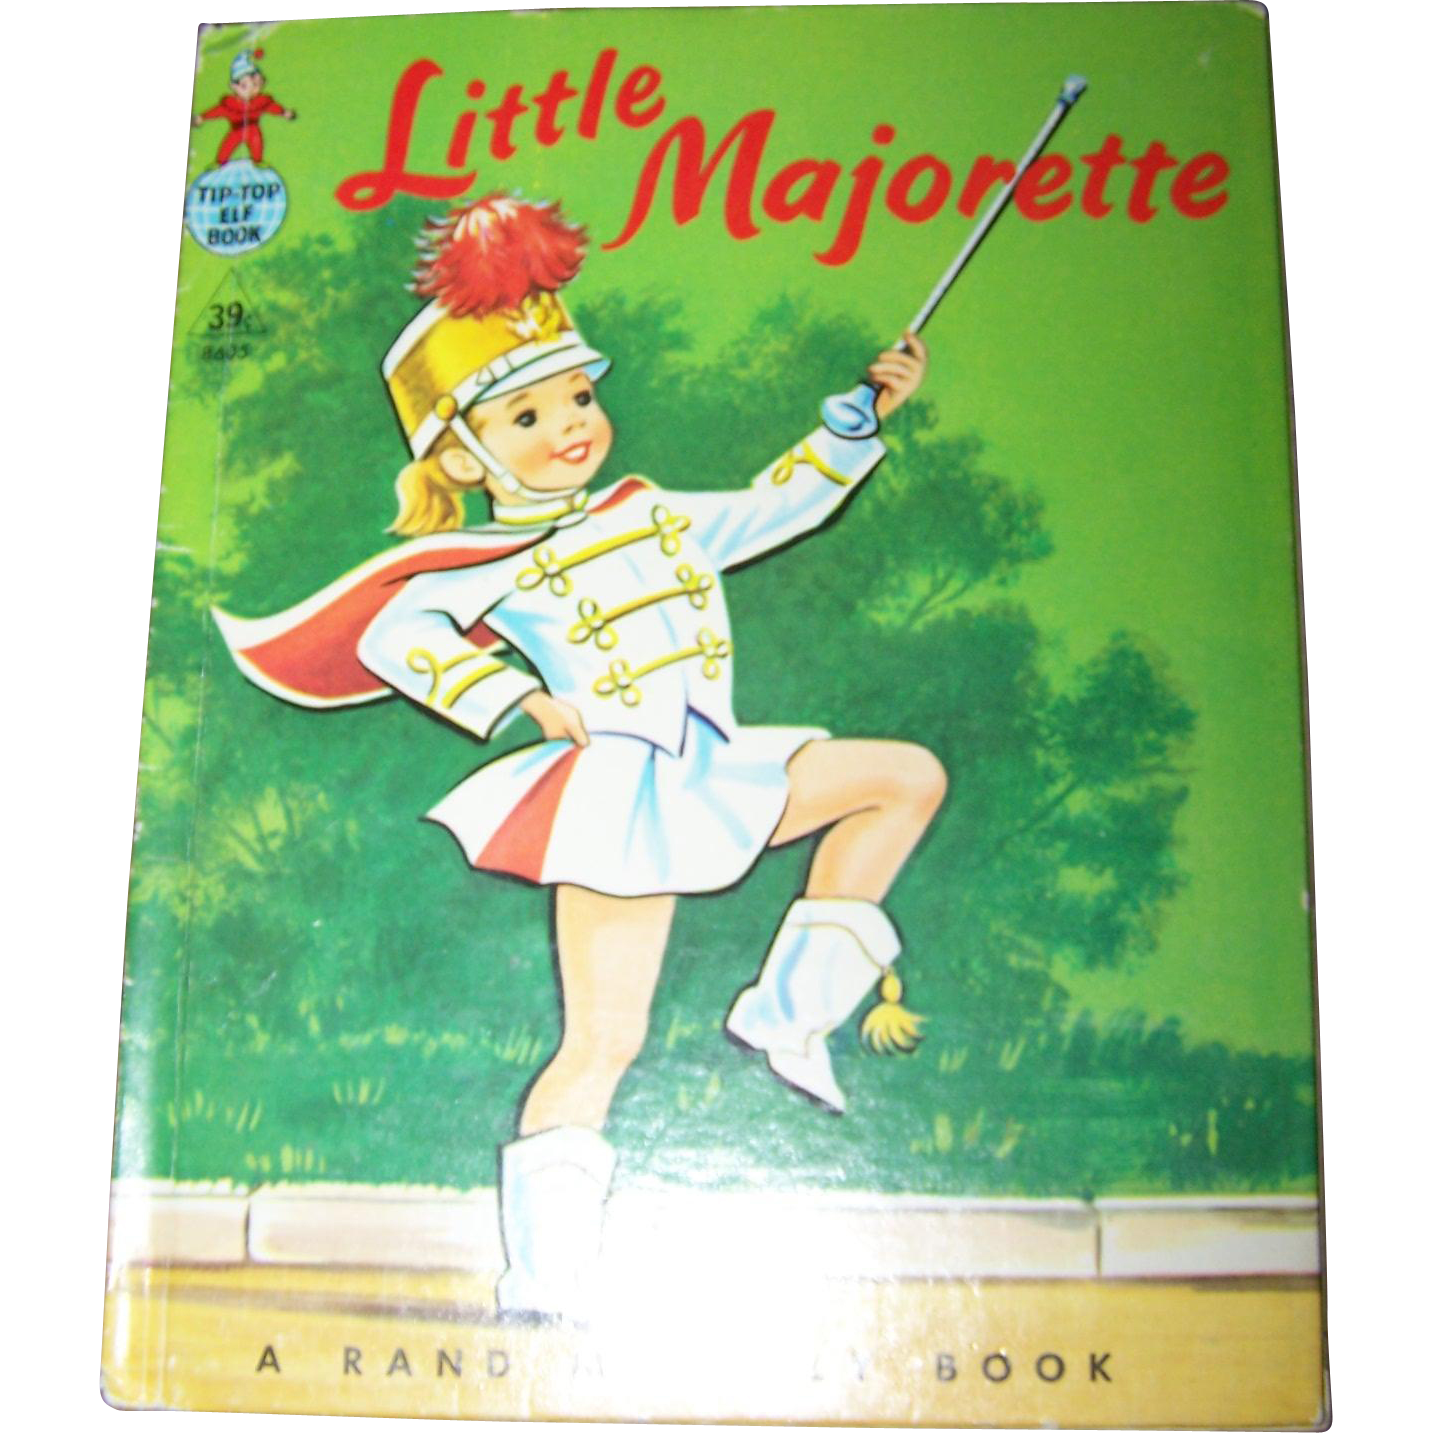 A Charming Children's Book Little Majorette by Dorothy Grider MCMLIX